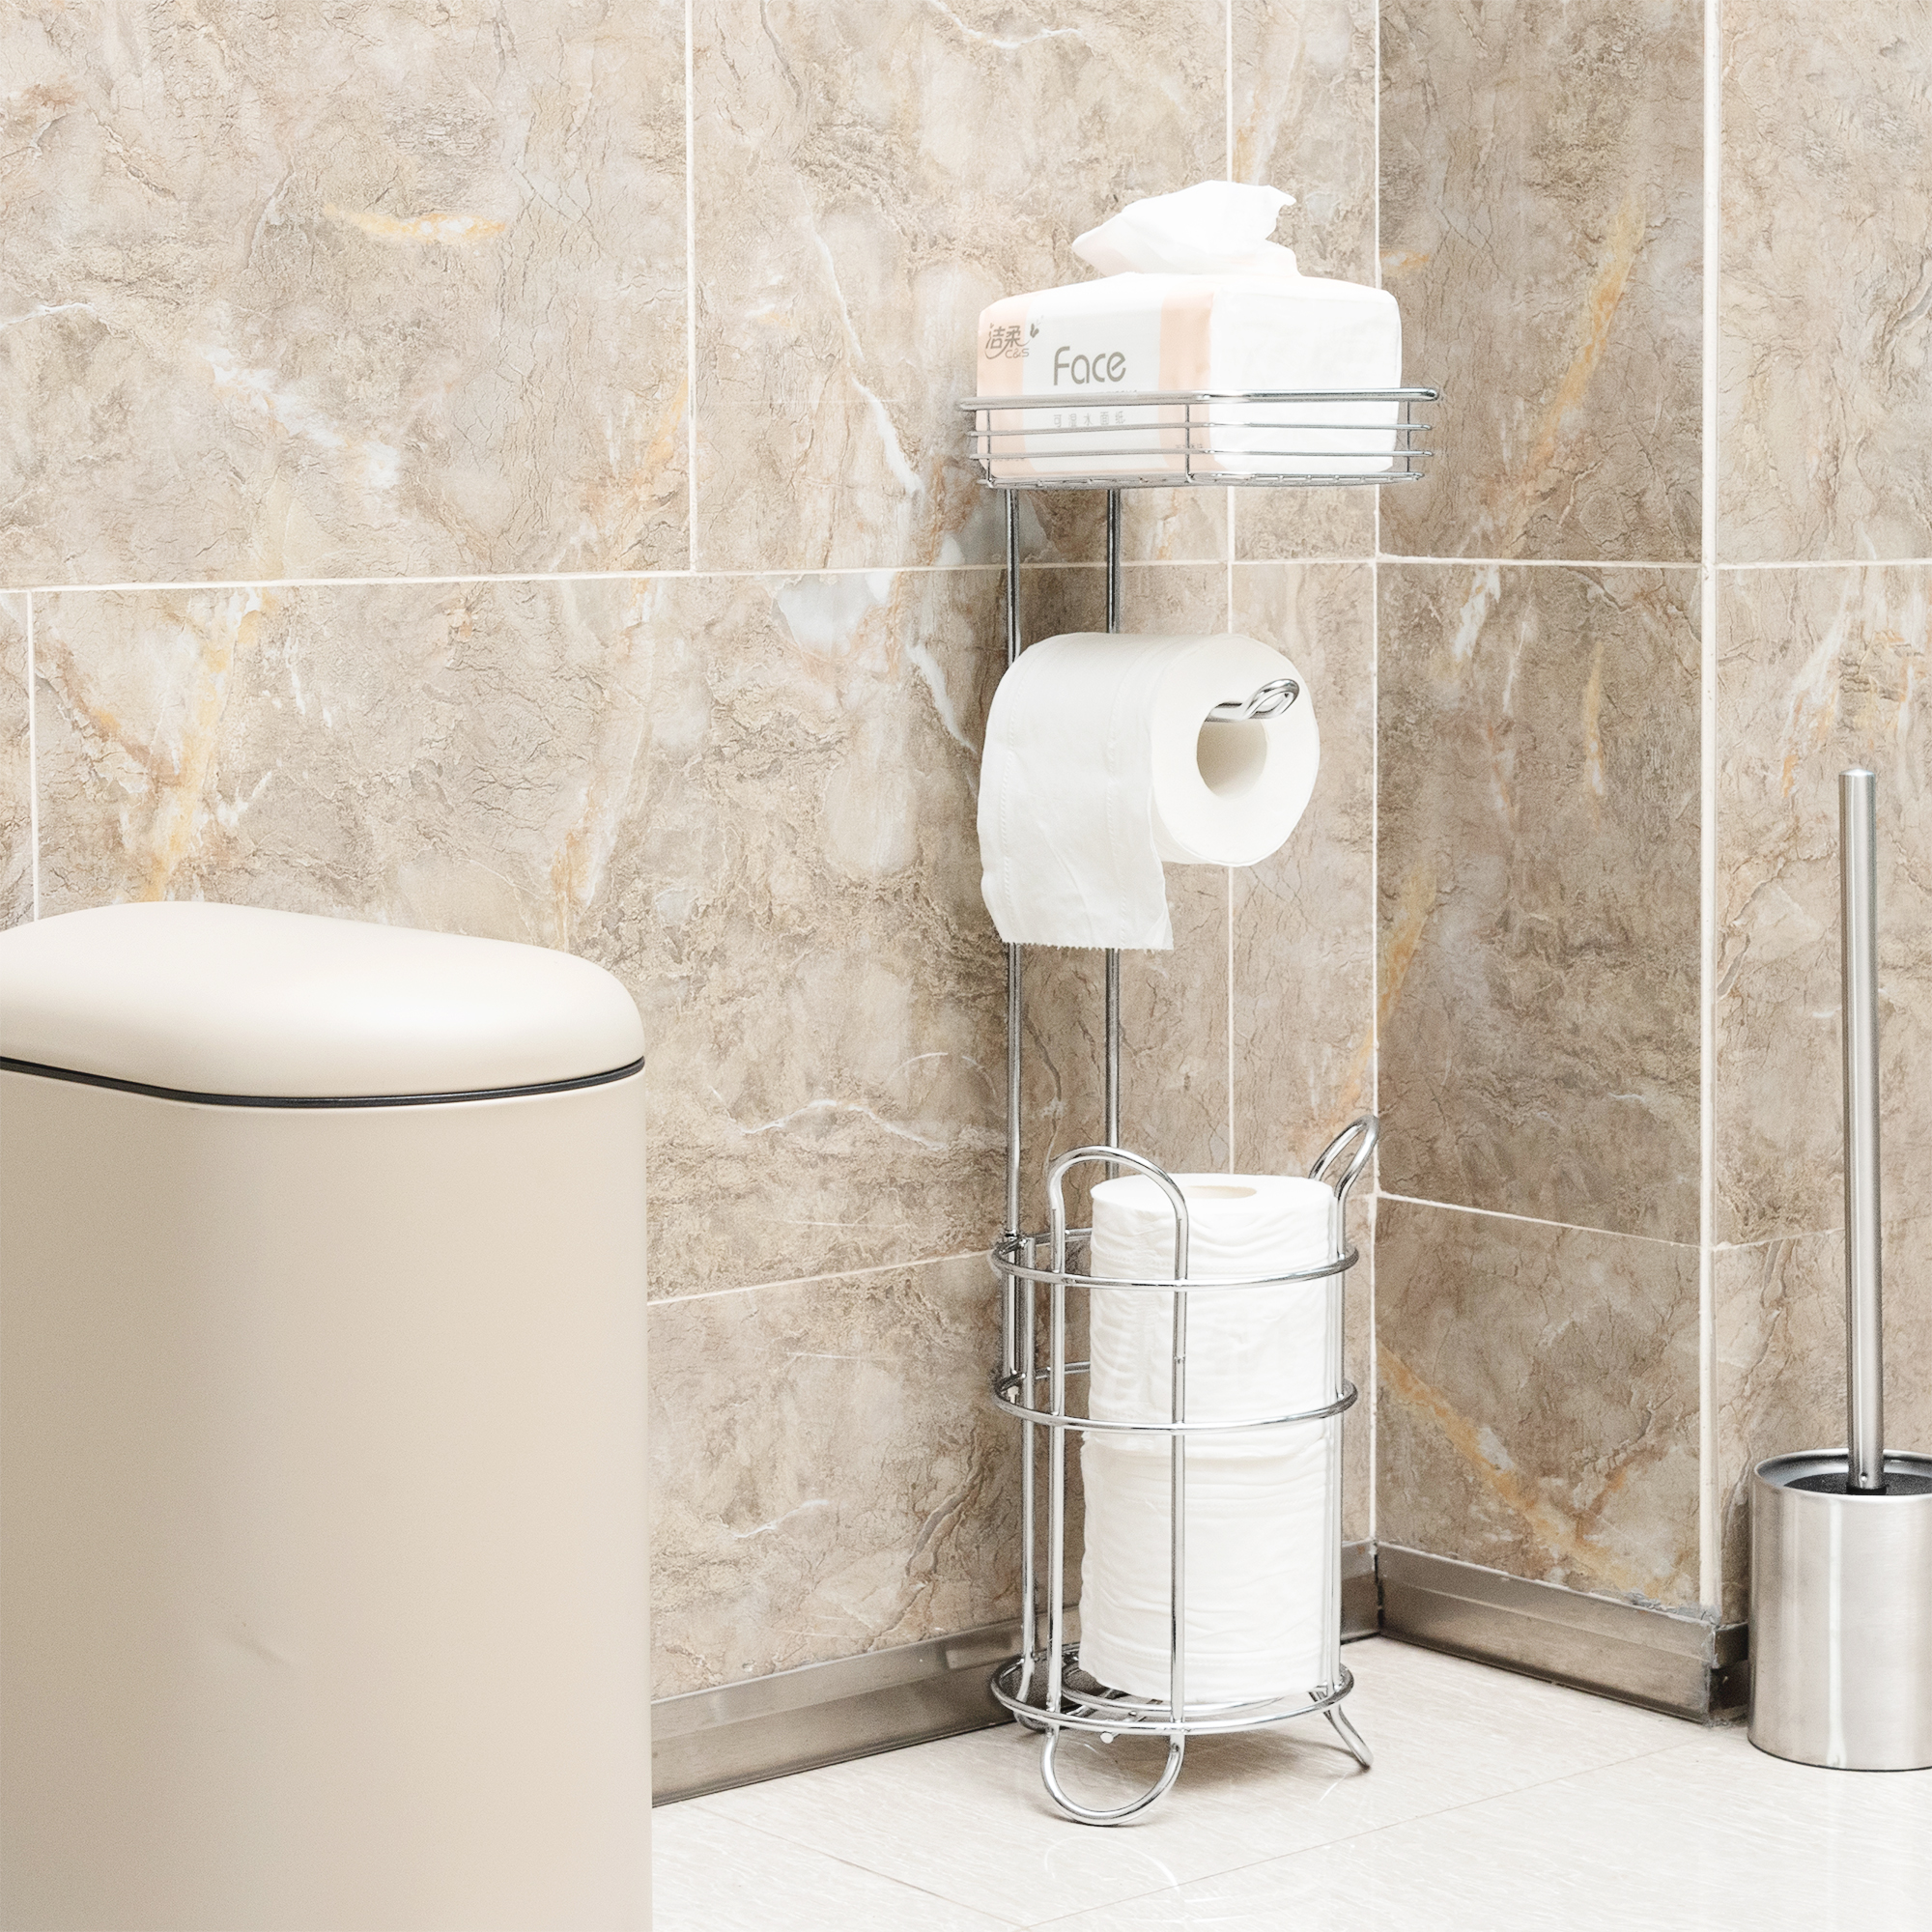 Stainless Steel Chrome Finish Bathroom Toilet Tissue Paper Roll Storage Holder With Reserve Freestanding Shelf For Cell Phone